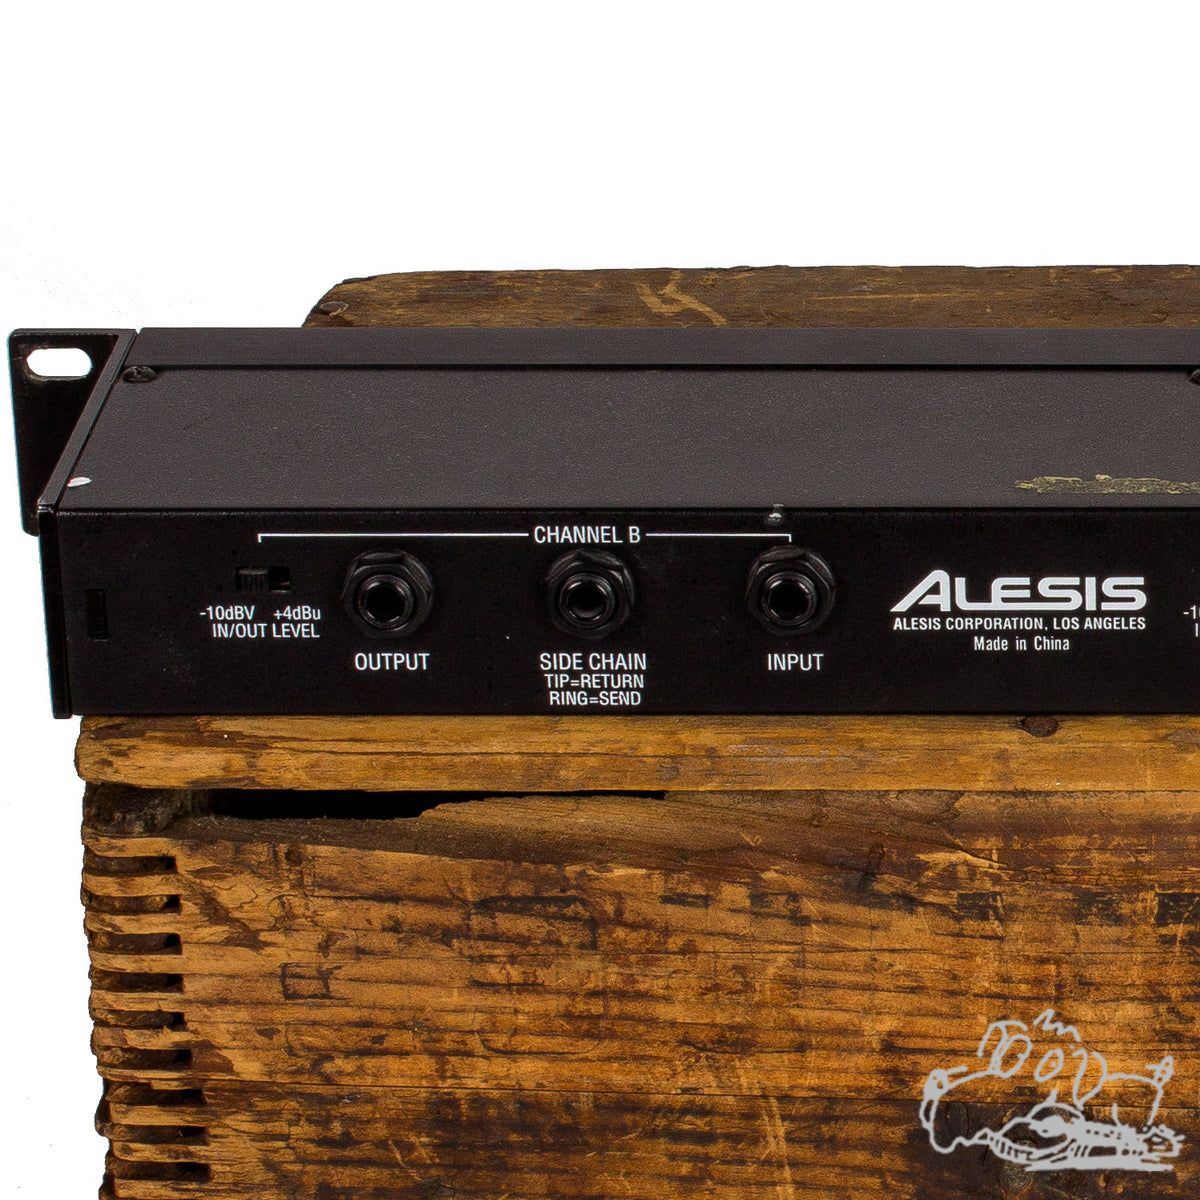 Alesis Studio Electronics 3630 Compressor RMS/Peak Dual Channel Compressor Limiter With Gate